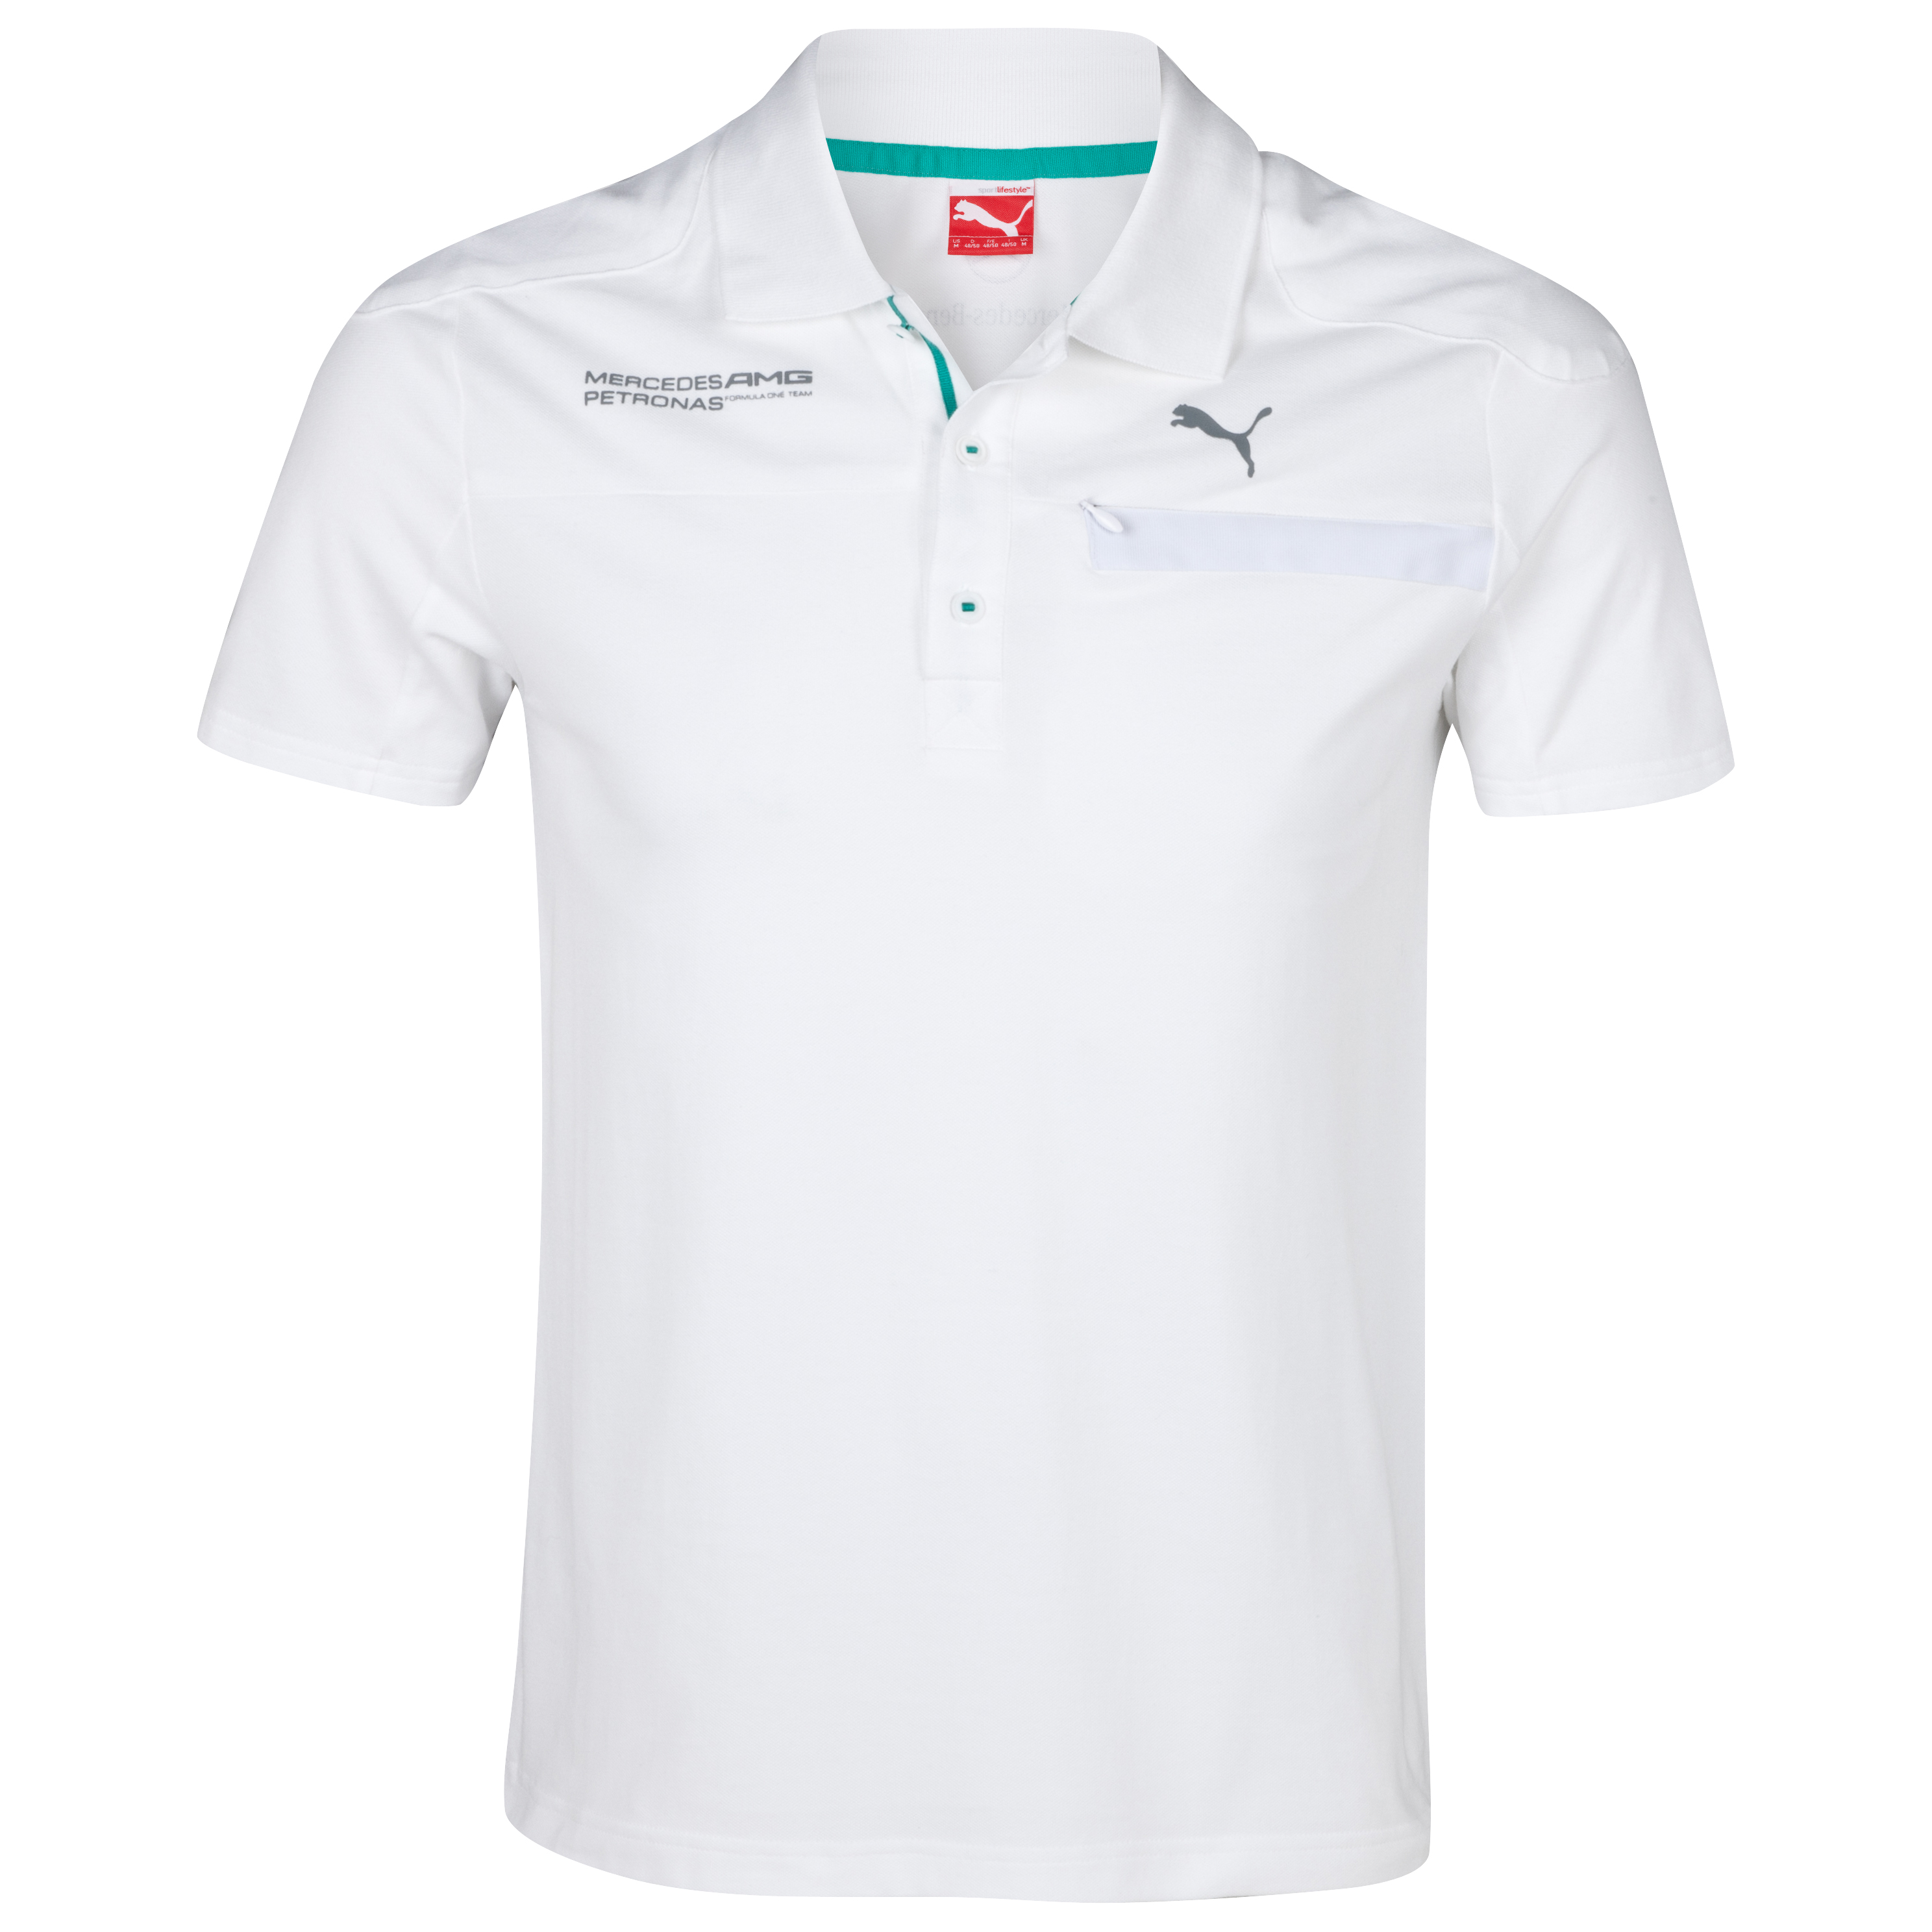 Mercedes AMG Petronas 2013 Polo - White